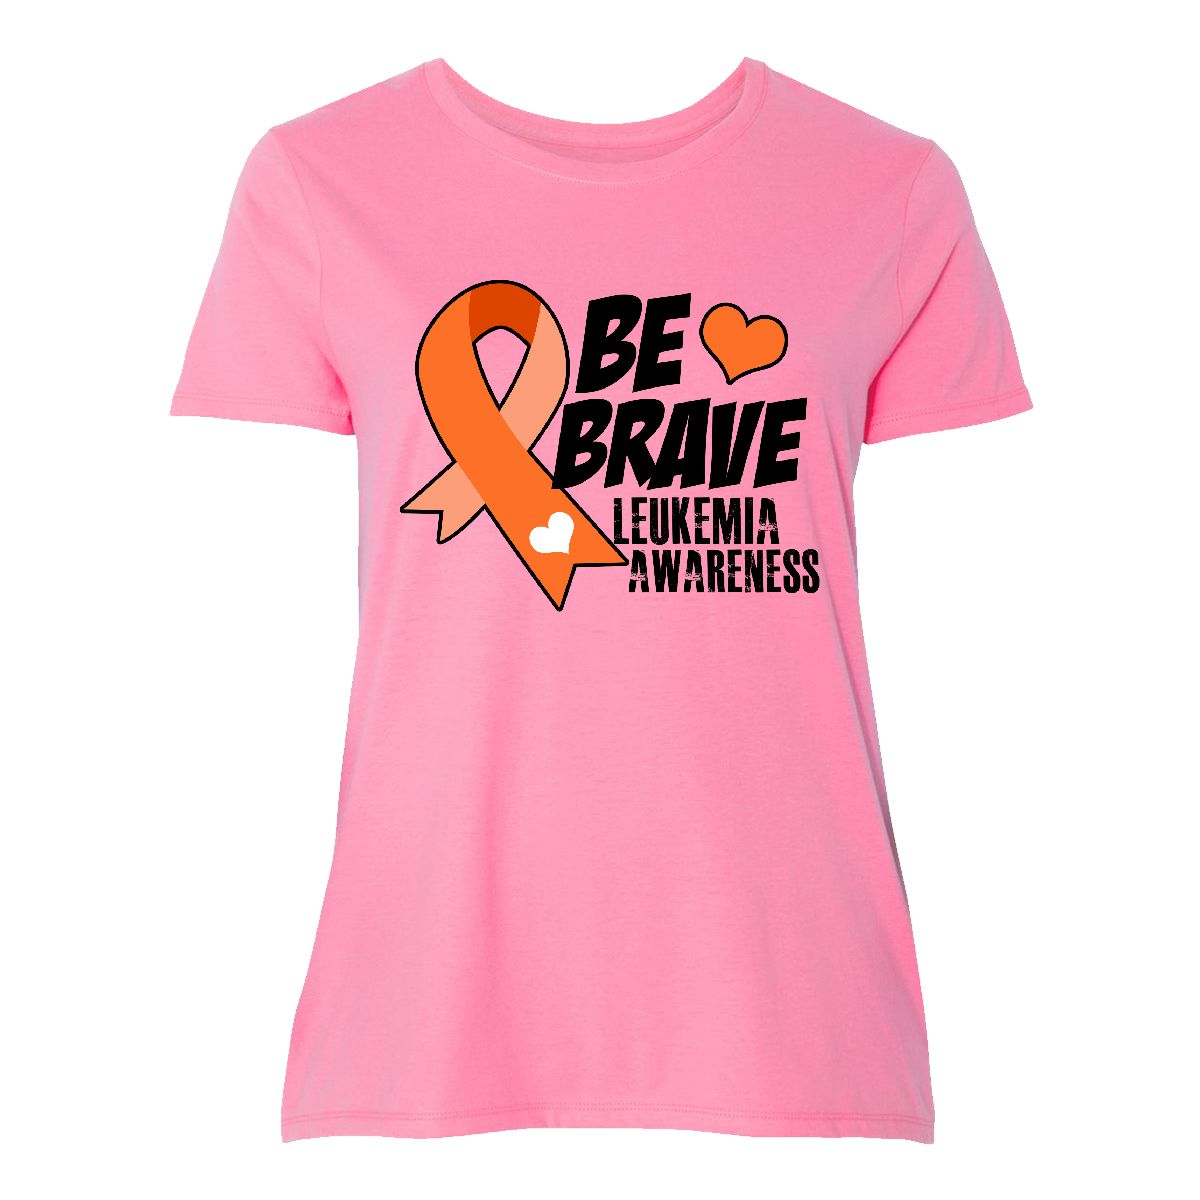 9a214060f50 Details about Inktastic Be Brave Leukemia Awareness Women s Plus Size  T-Shirt Cancer Ribbon My